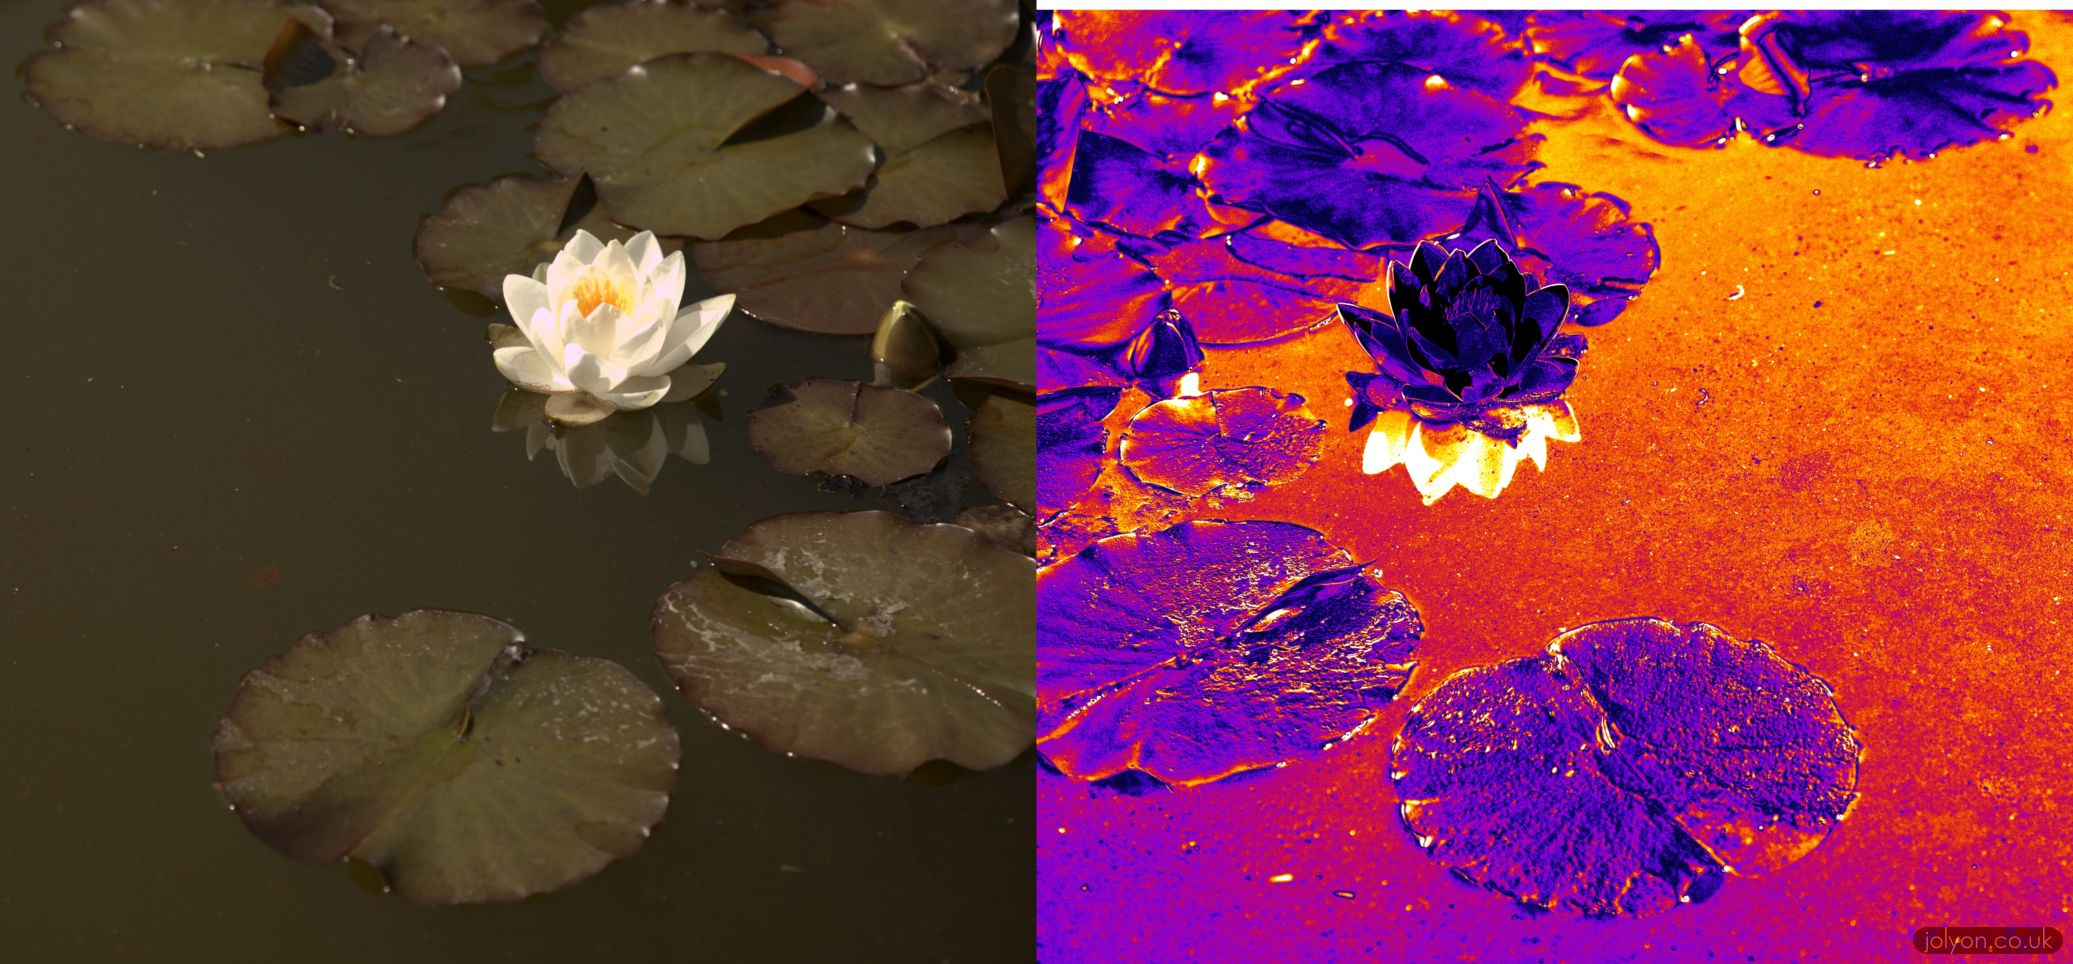 Dragonflies have complex colour vision, but they can also see polarised light. This image shows what the world can look like with polarisation vision.